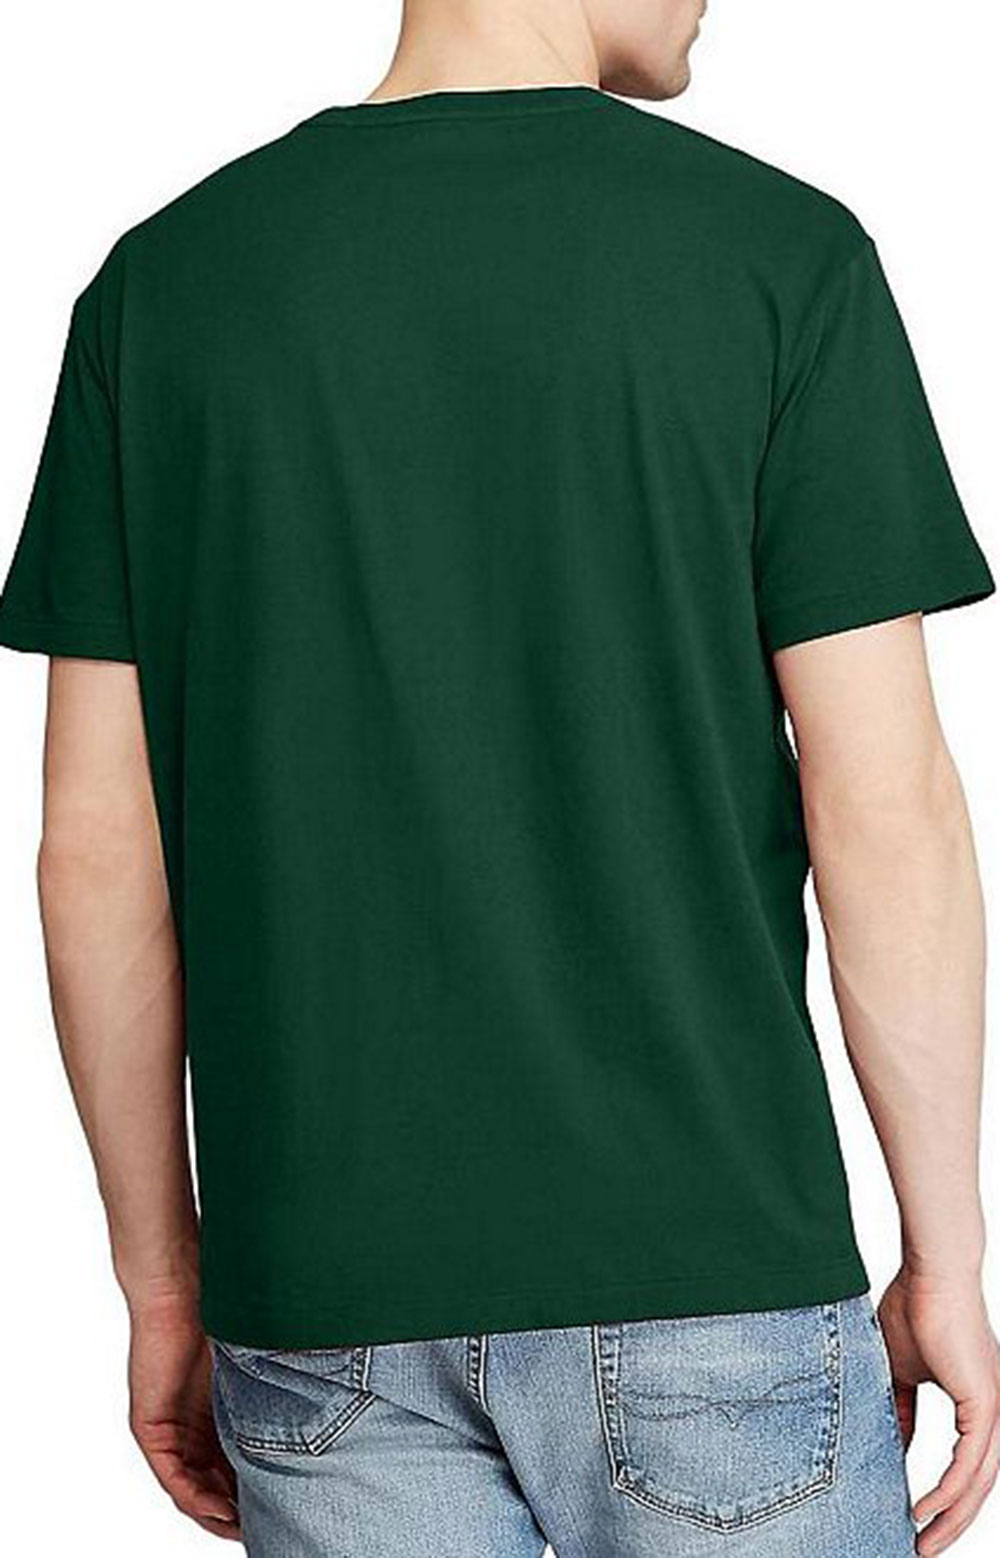 Classic Fit Cotton T-Shirt - College Green  2